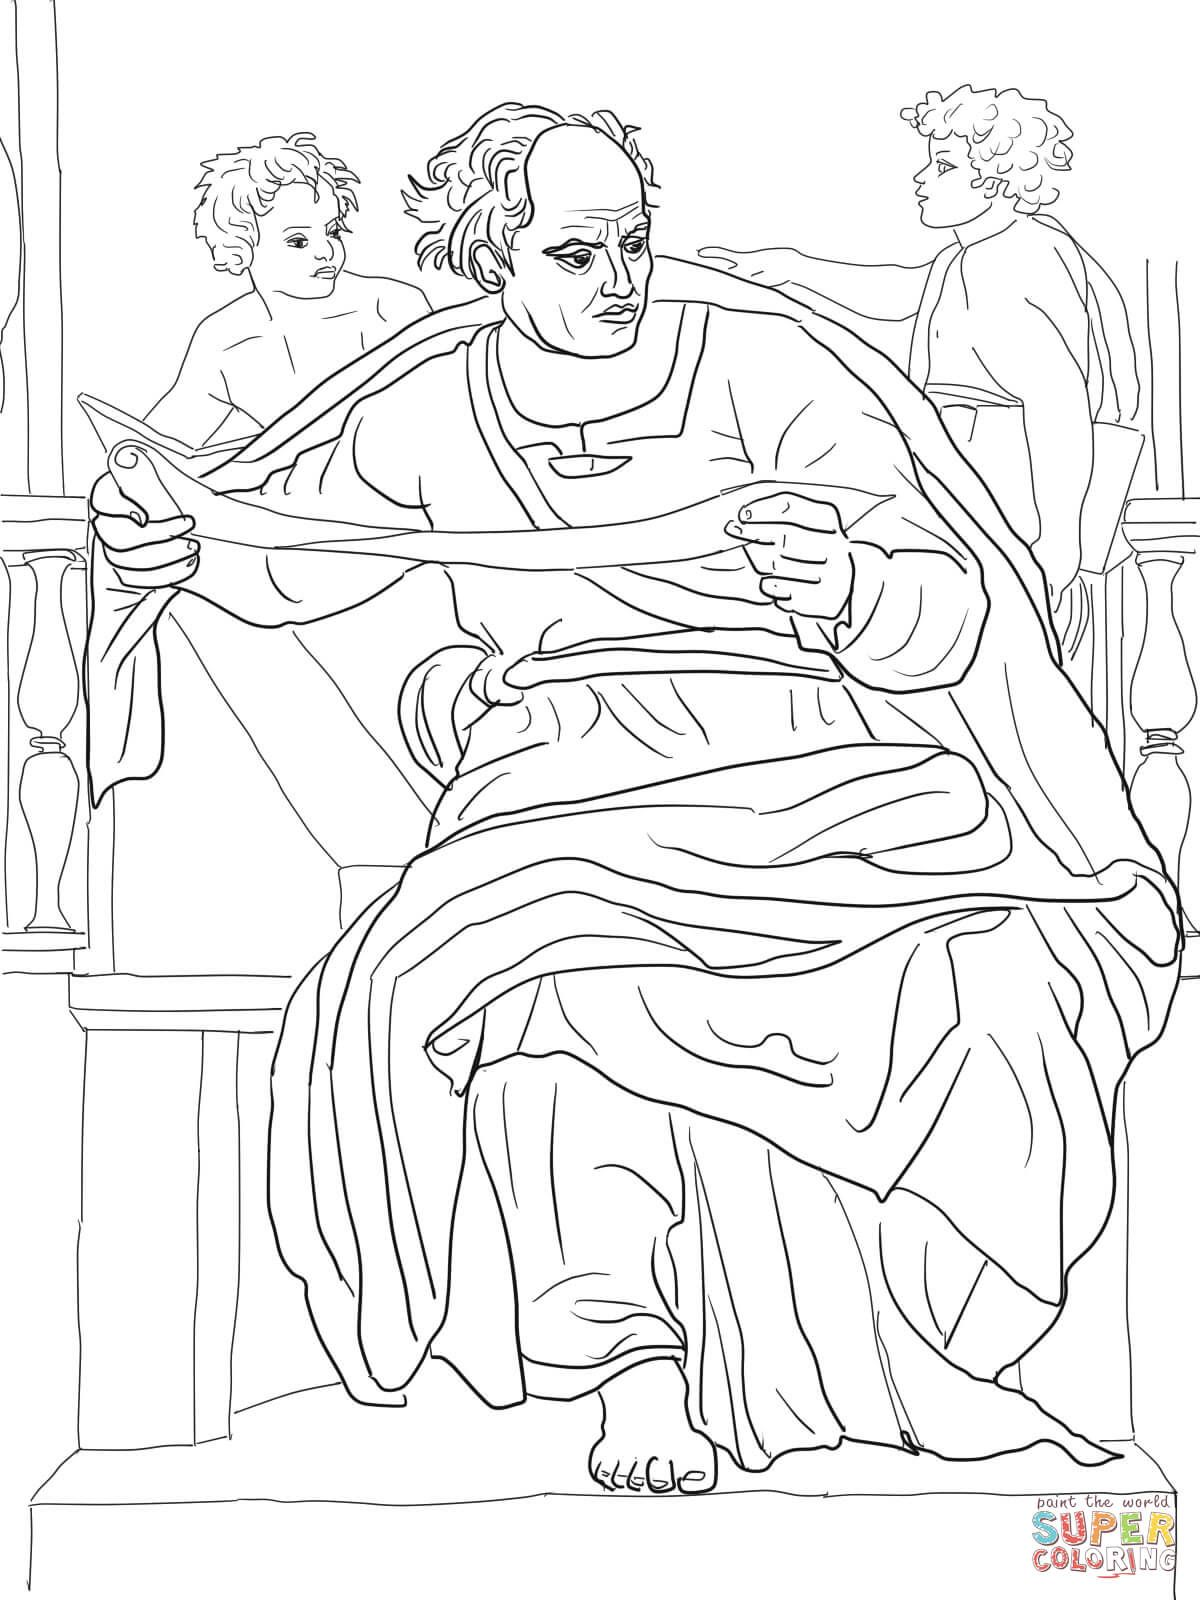 Prophet Joel coloring page from Michelangelo category. Sistine